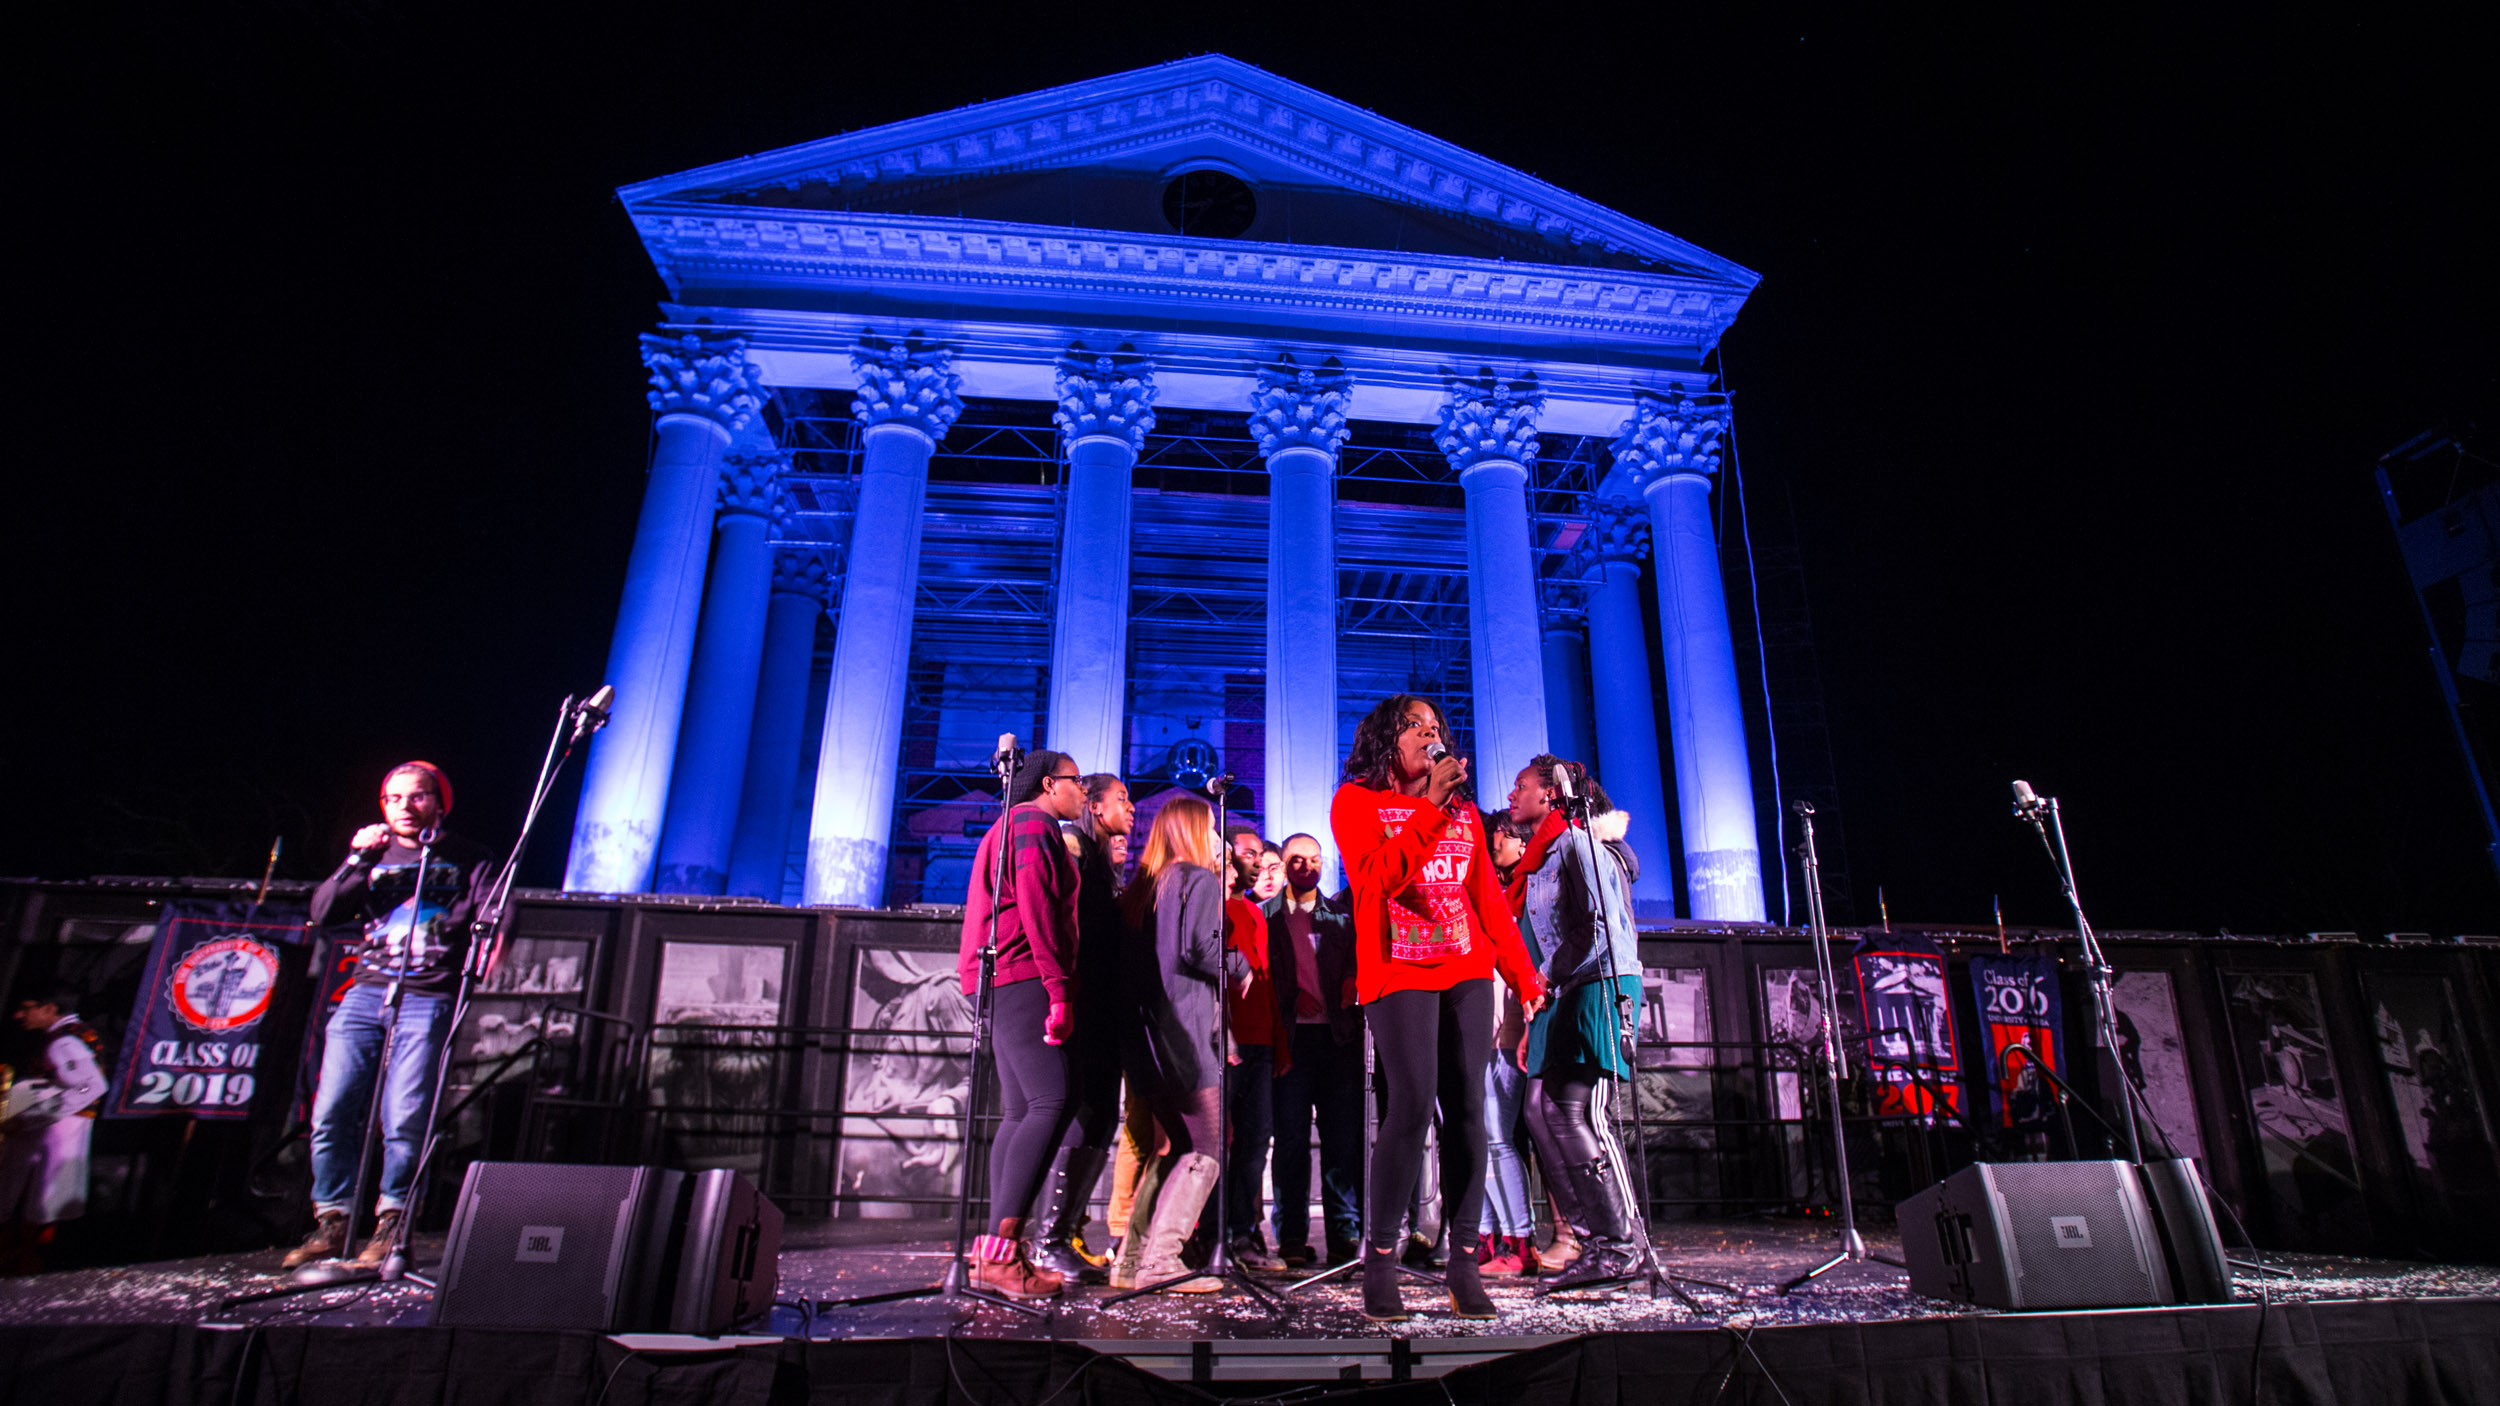 Several student a cappella groups, from the University and beyond, performed during Lighting of the Lawn.